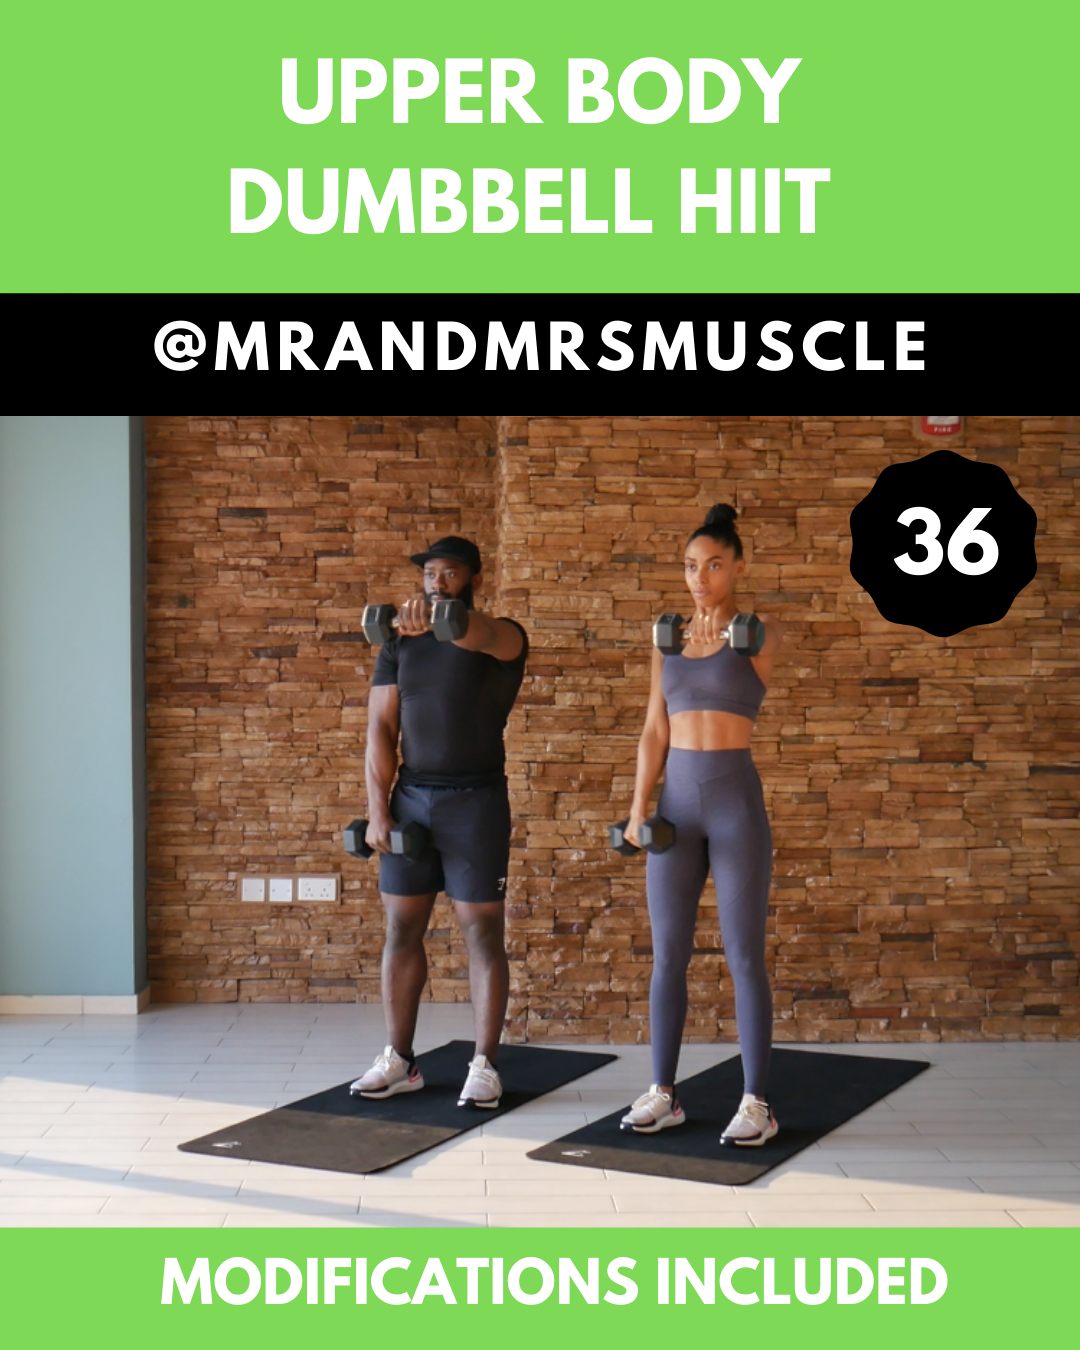 Upper Body Dumbbell HIIT